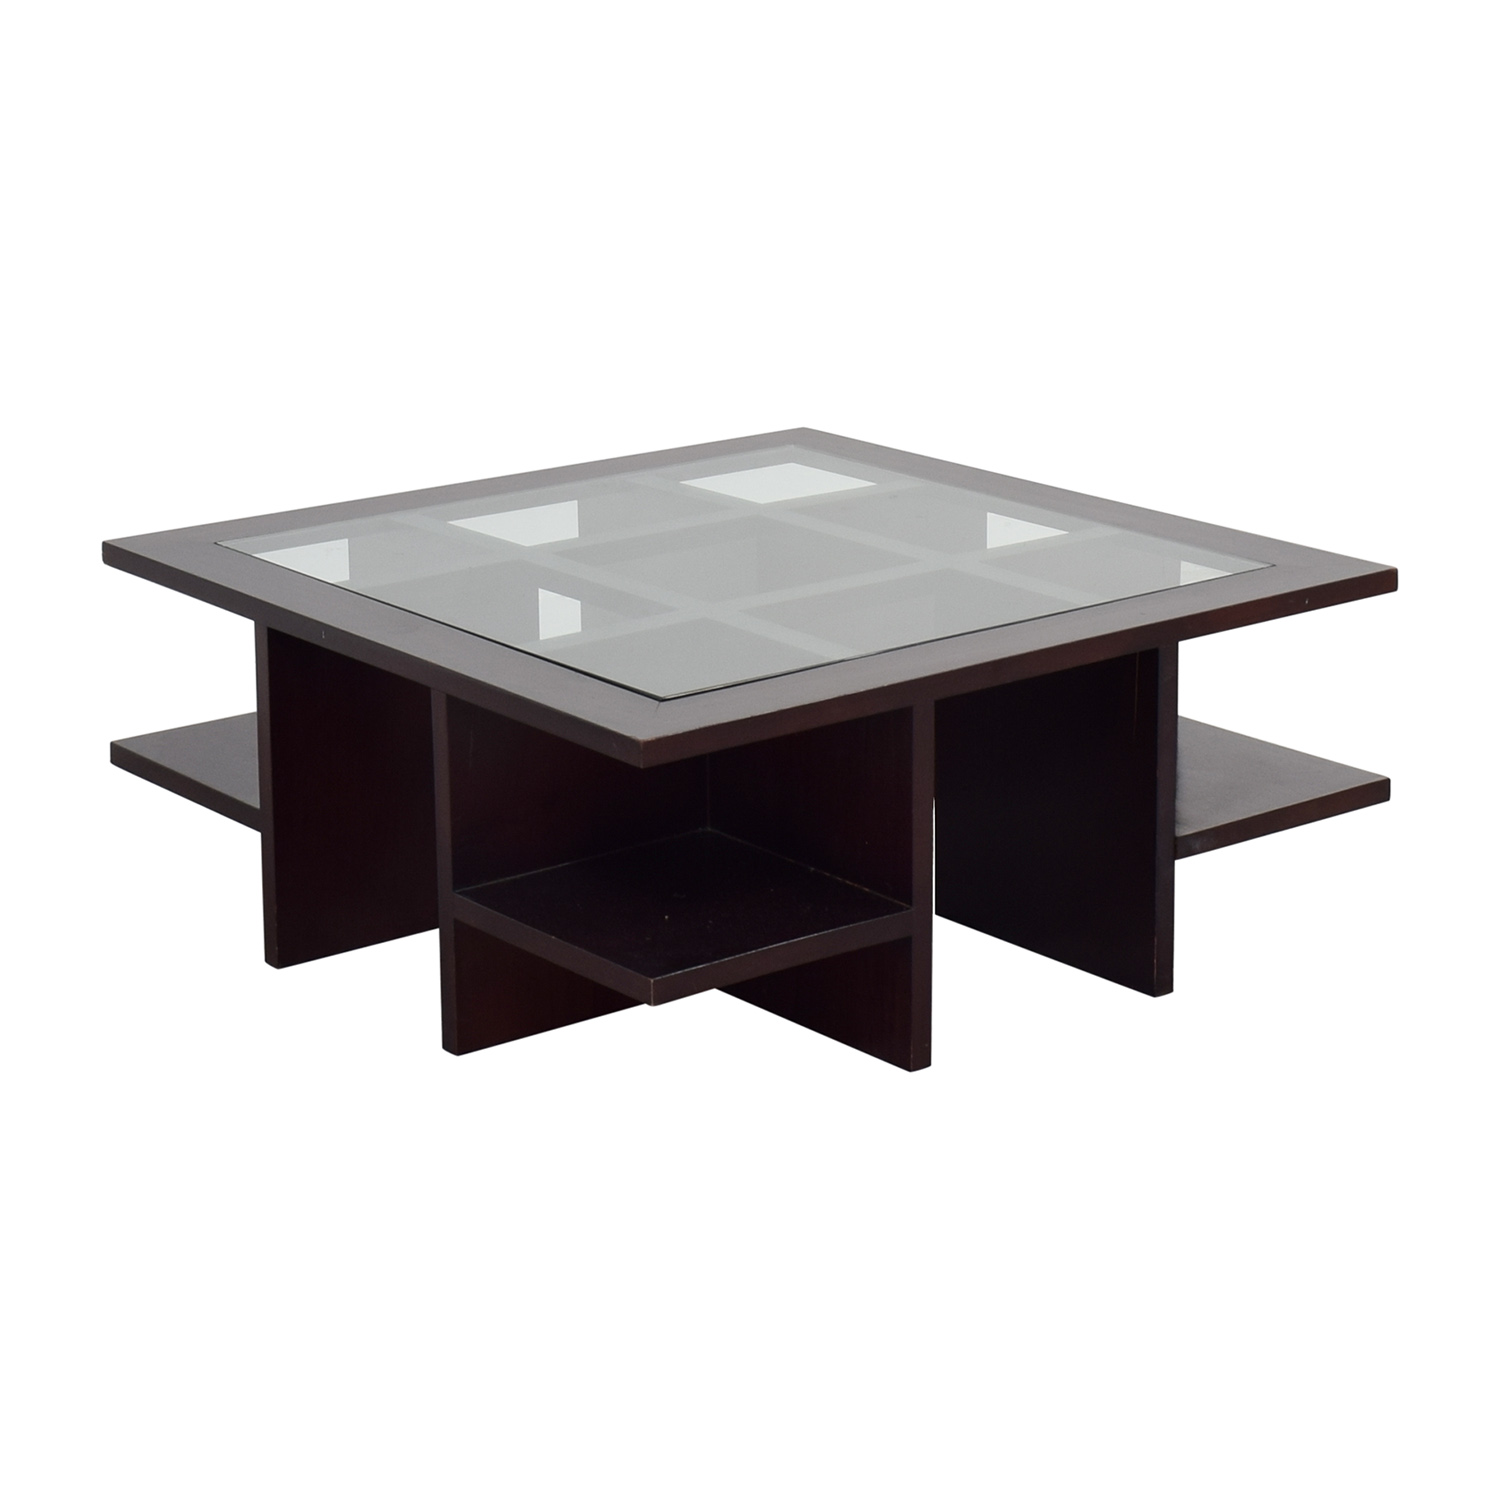 88 Off Moie Moie Wood And Glass Coffee Table With Side Shelves Tables